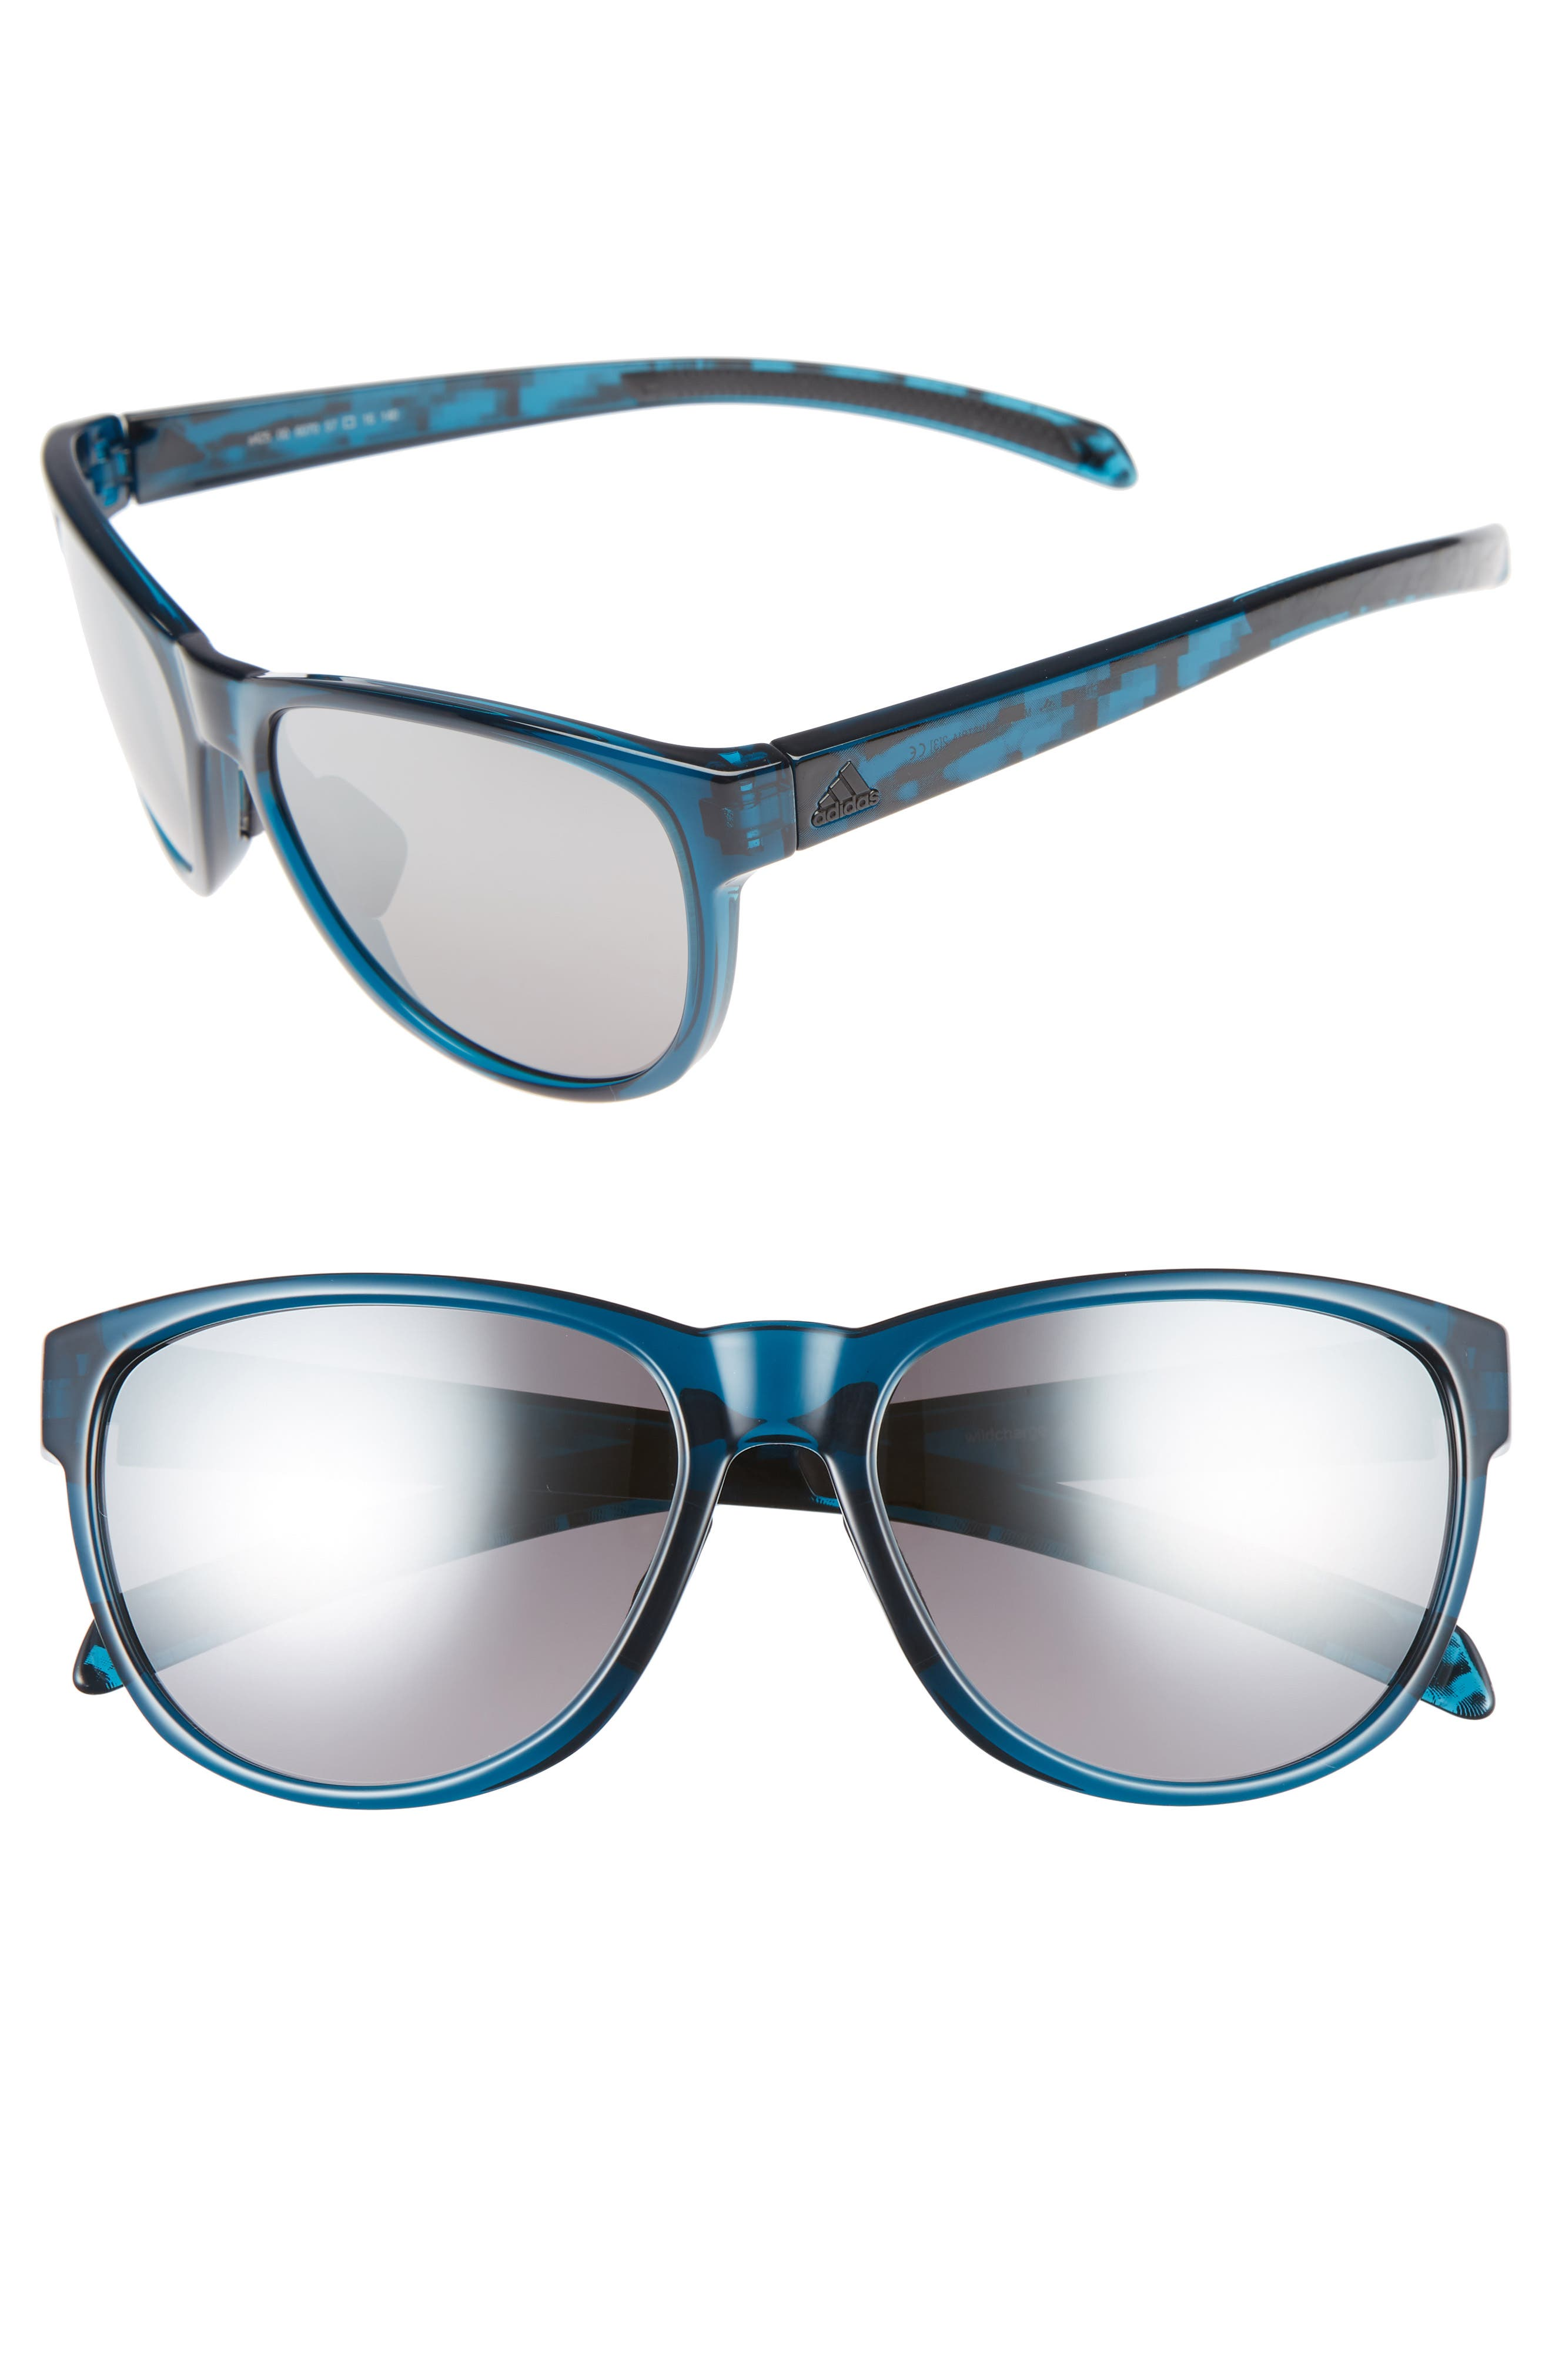 Wildcharge 61mm Mirrored Sunglasses,                             Main thumbnail 1, color,                             400